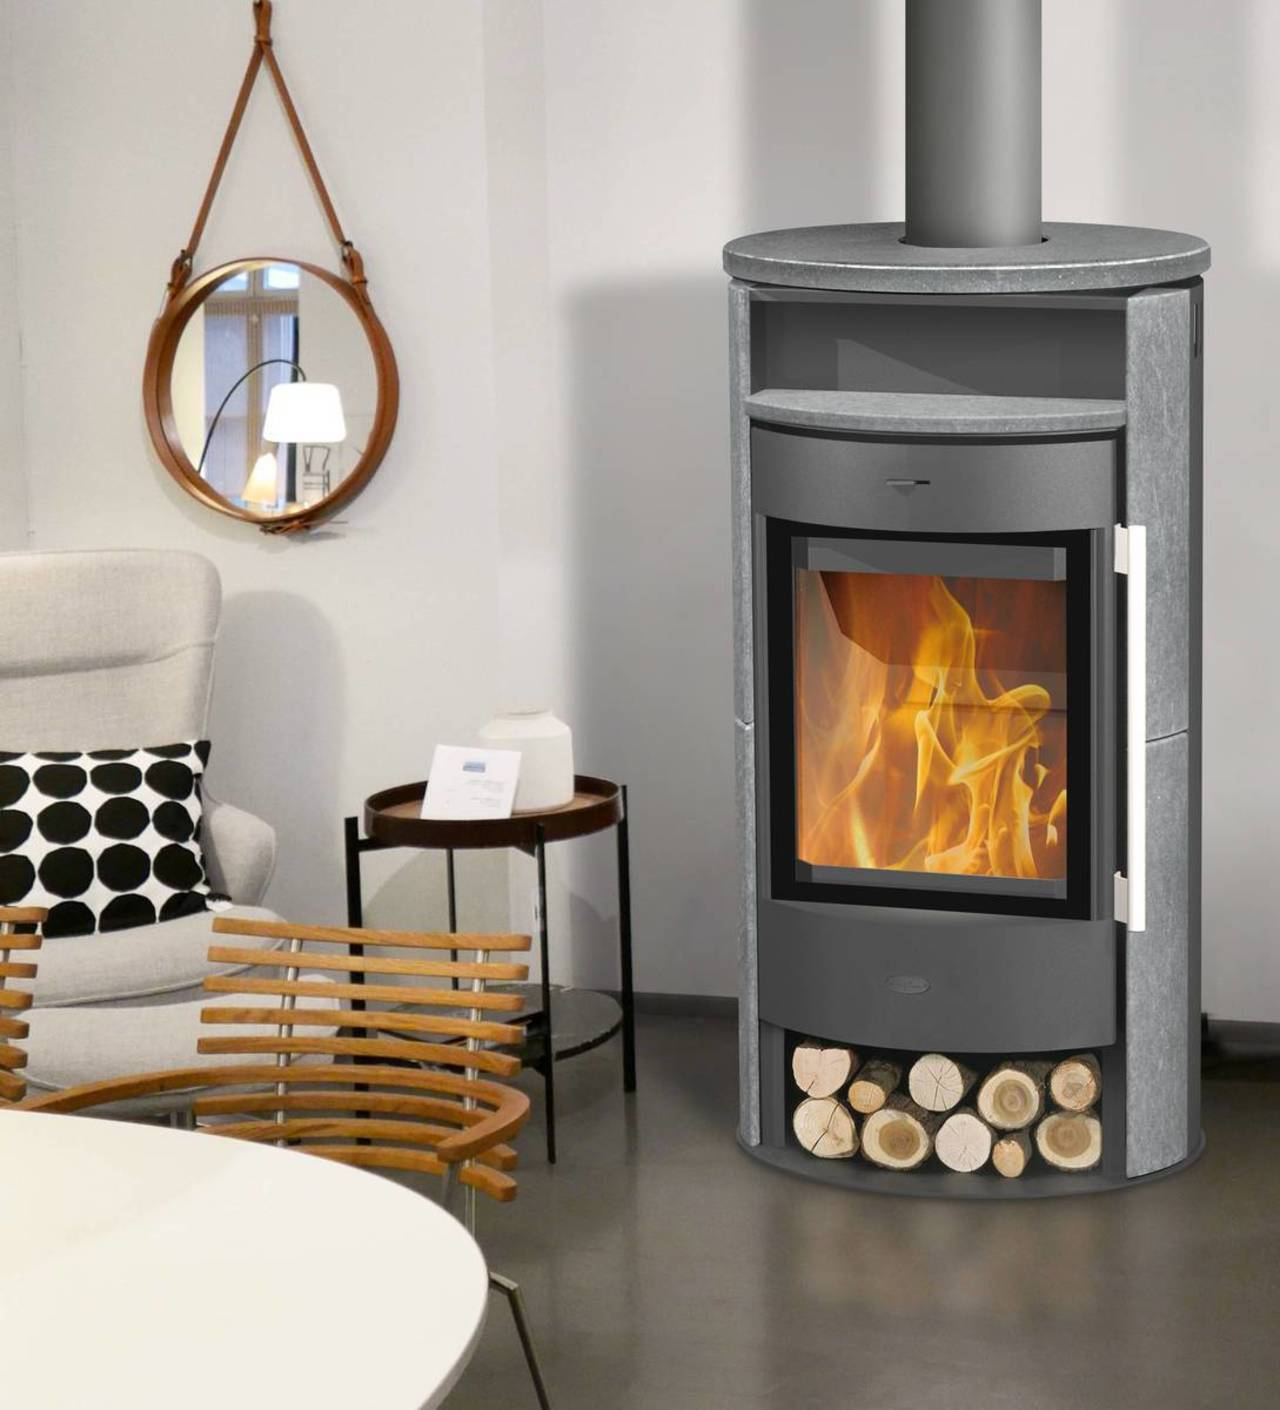 fireplace kaminofen durango speckstein 6 kw mit gro er vollglasscheibe ofen ebay. Black Bedroom Furniture Sets. Home Design Ideas